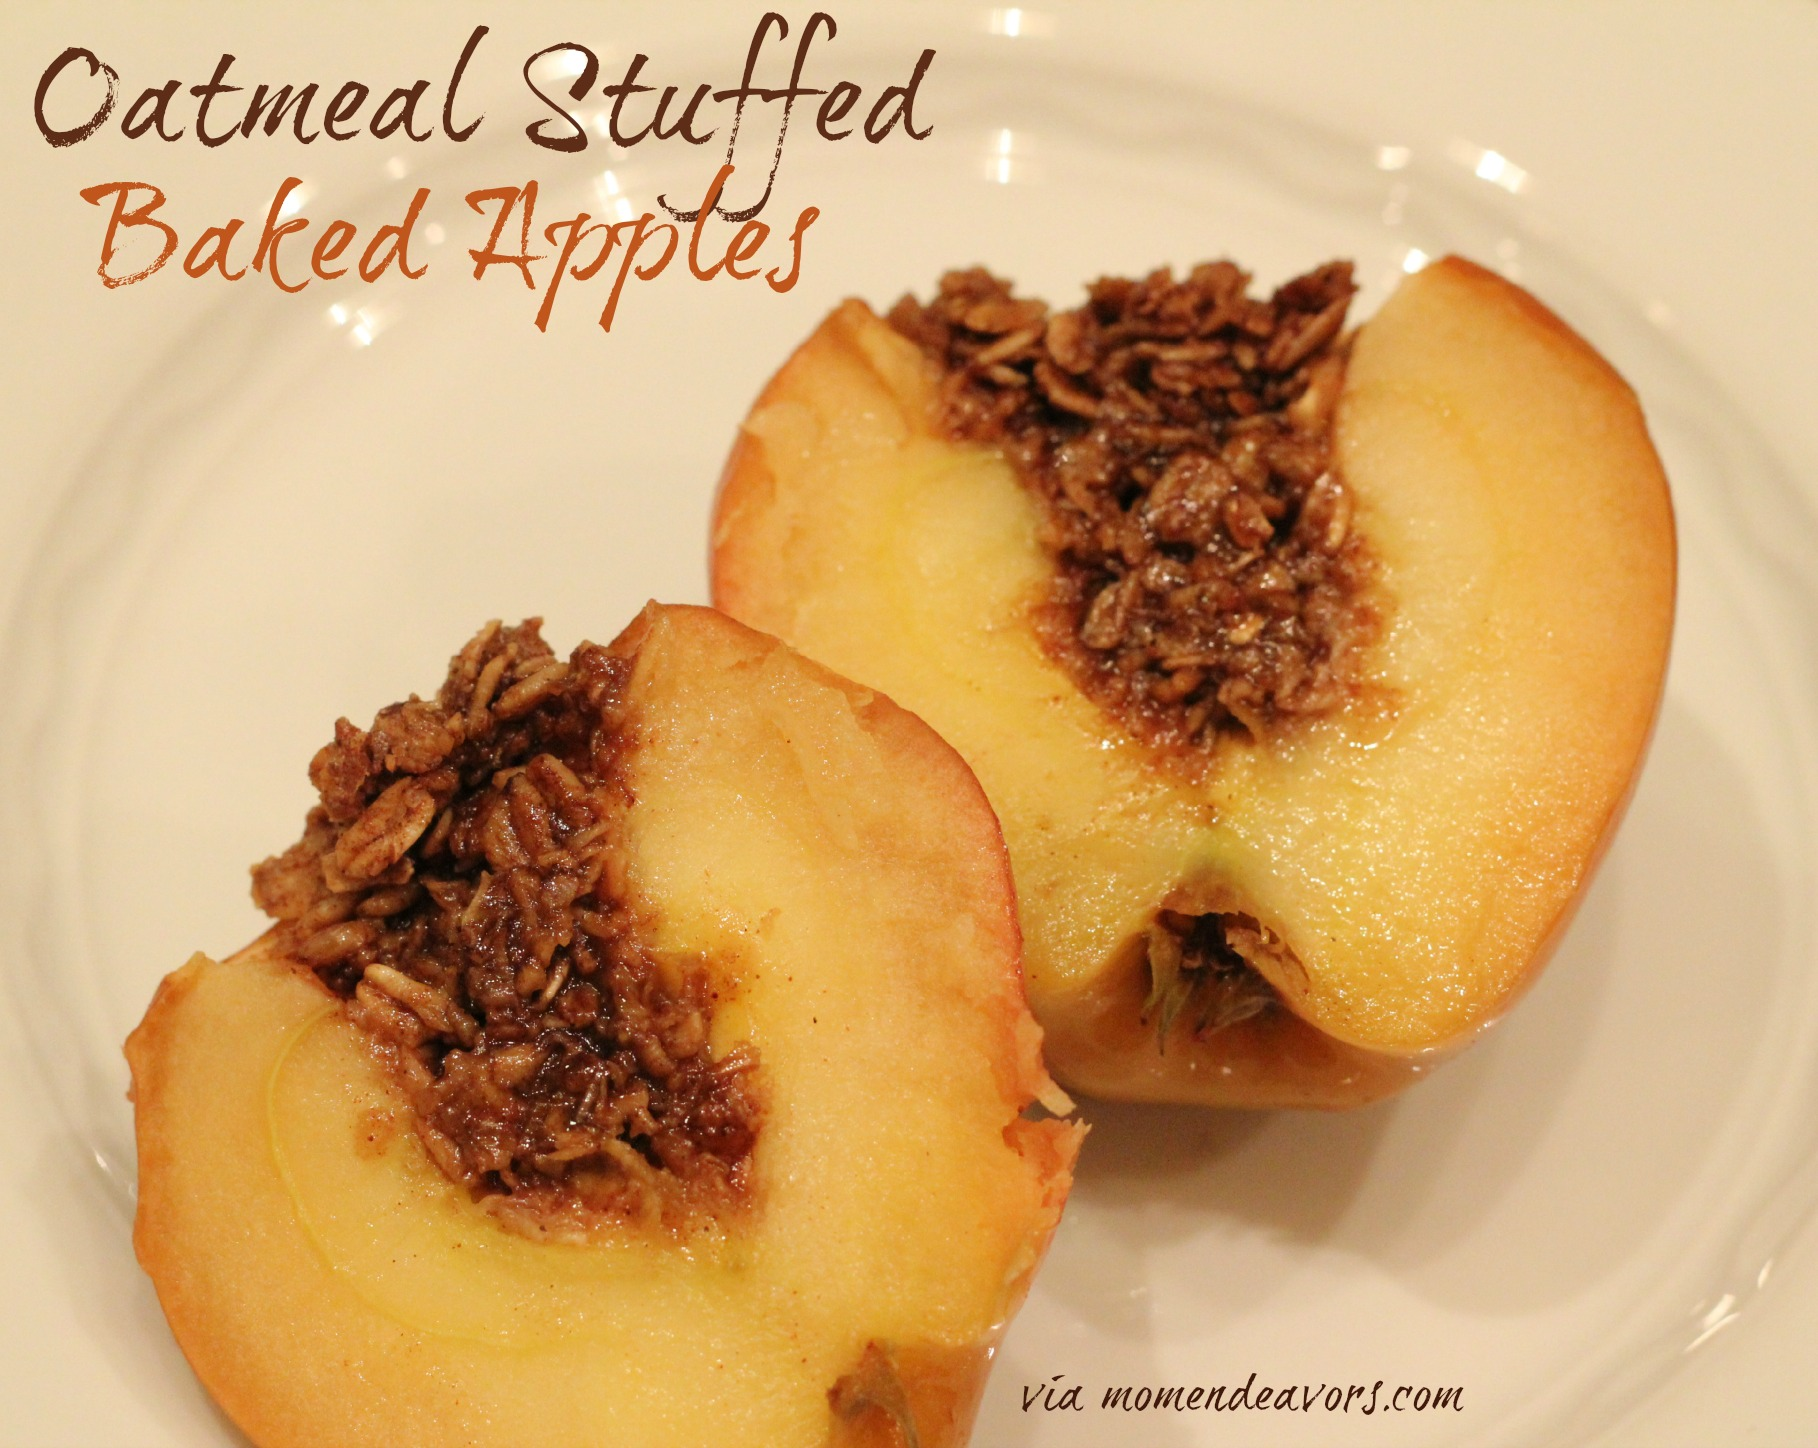 Oatmeal Stuffed Baked Apples from Mom Endeavors